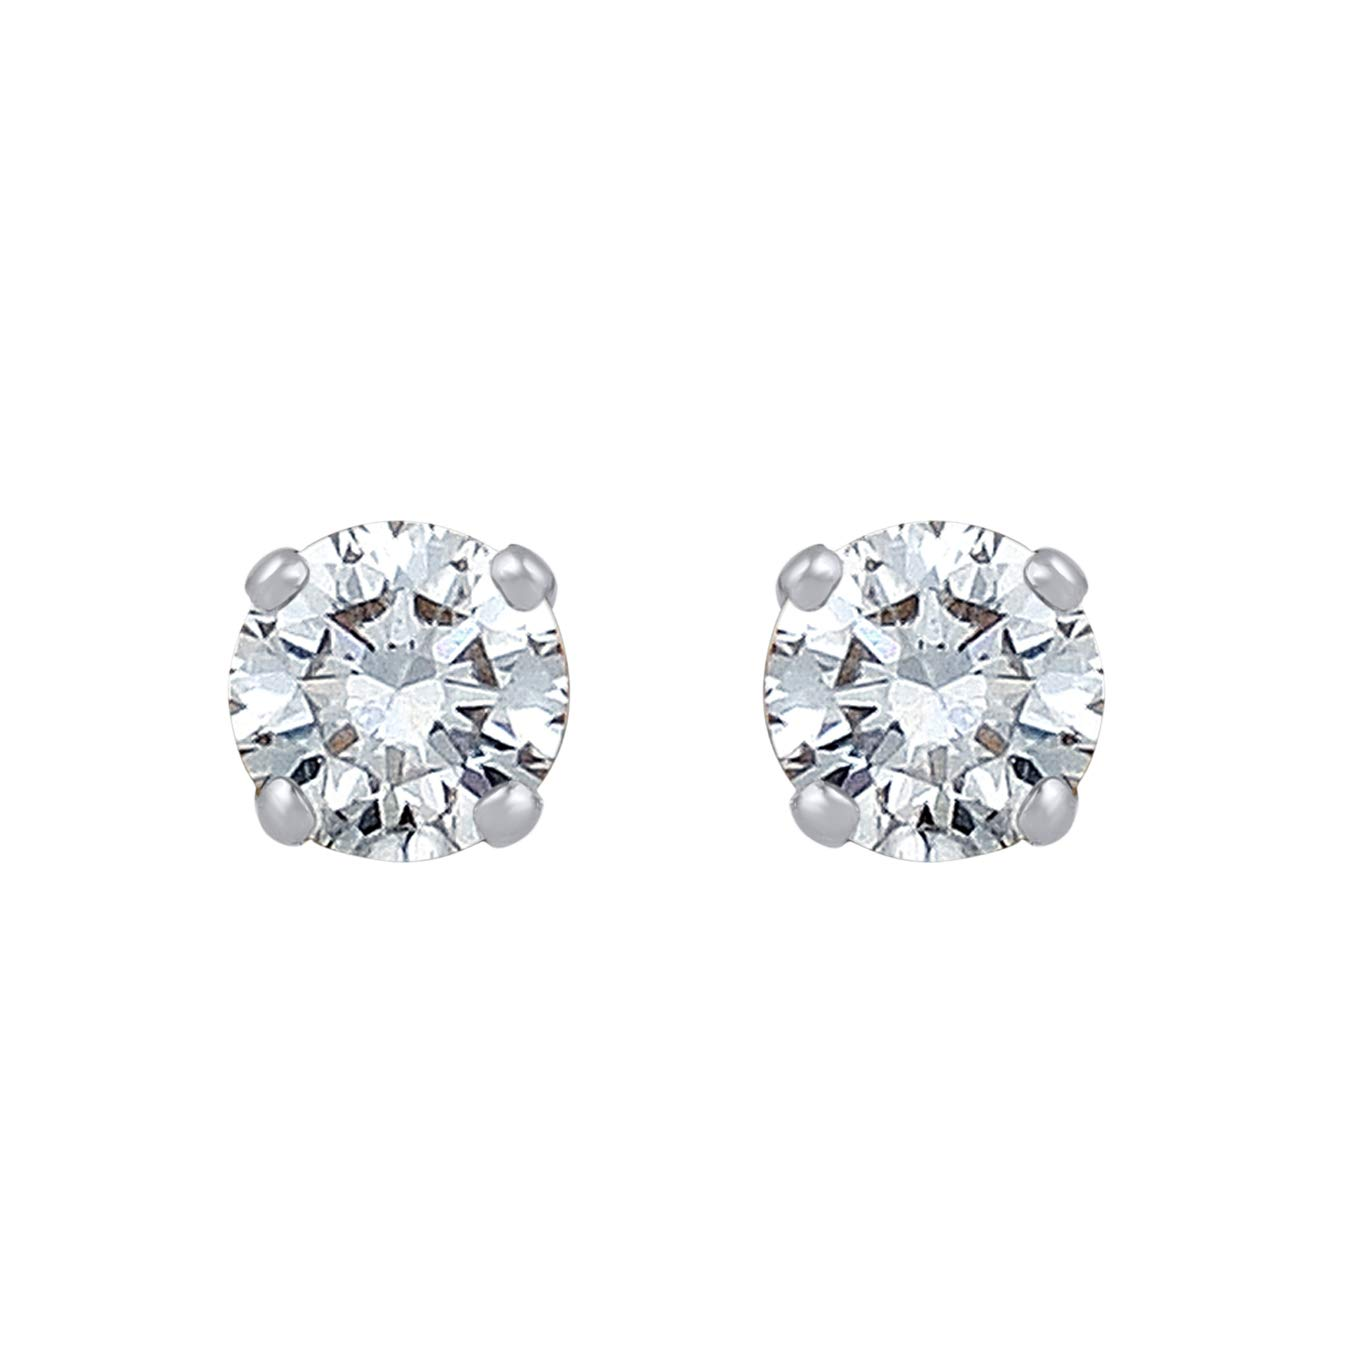 Mothers Day Gifts 3/8 Carat Natural Diamond Earrings 10K White Gold (H-I Color, I2-I3 Clarity) Classy Solitaire Diamond Earrings for Women Diamond Jewelry Gifts for Women